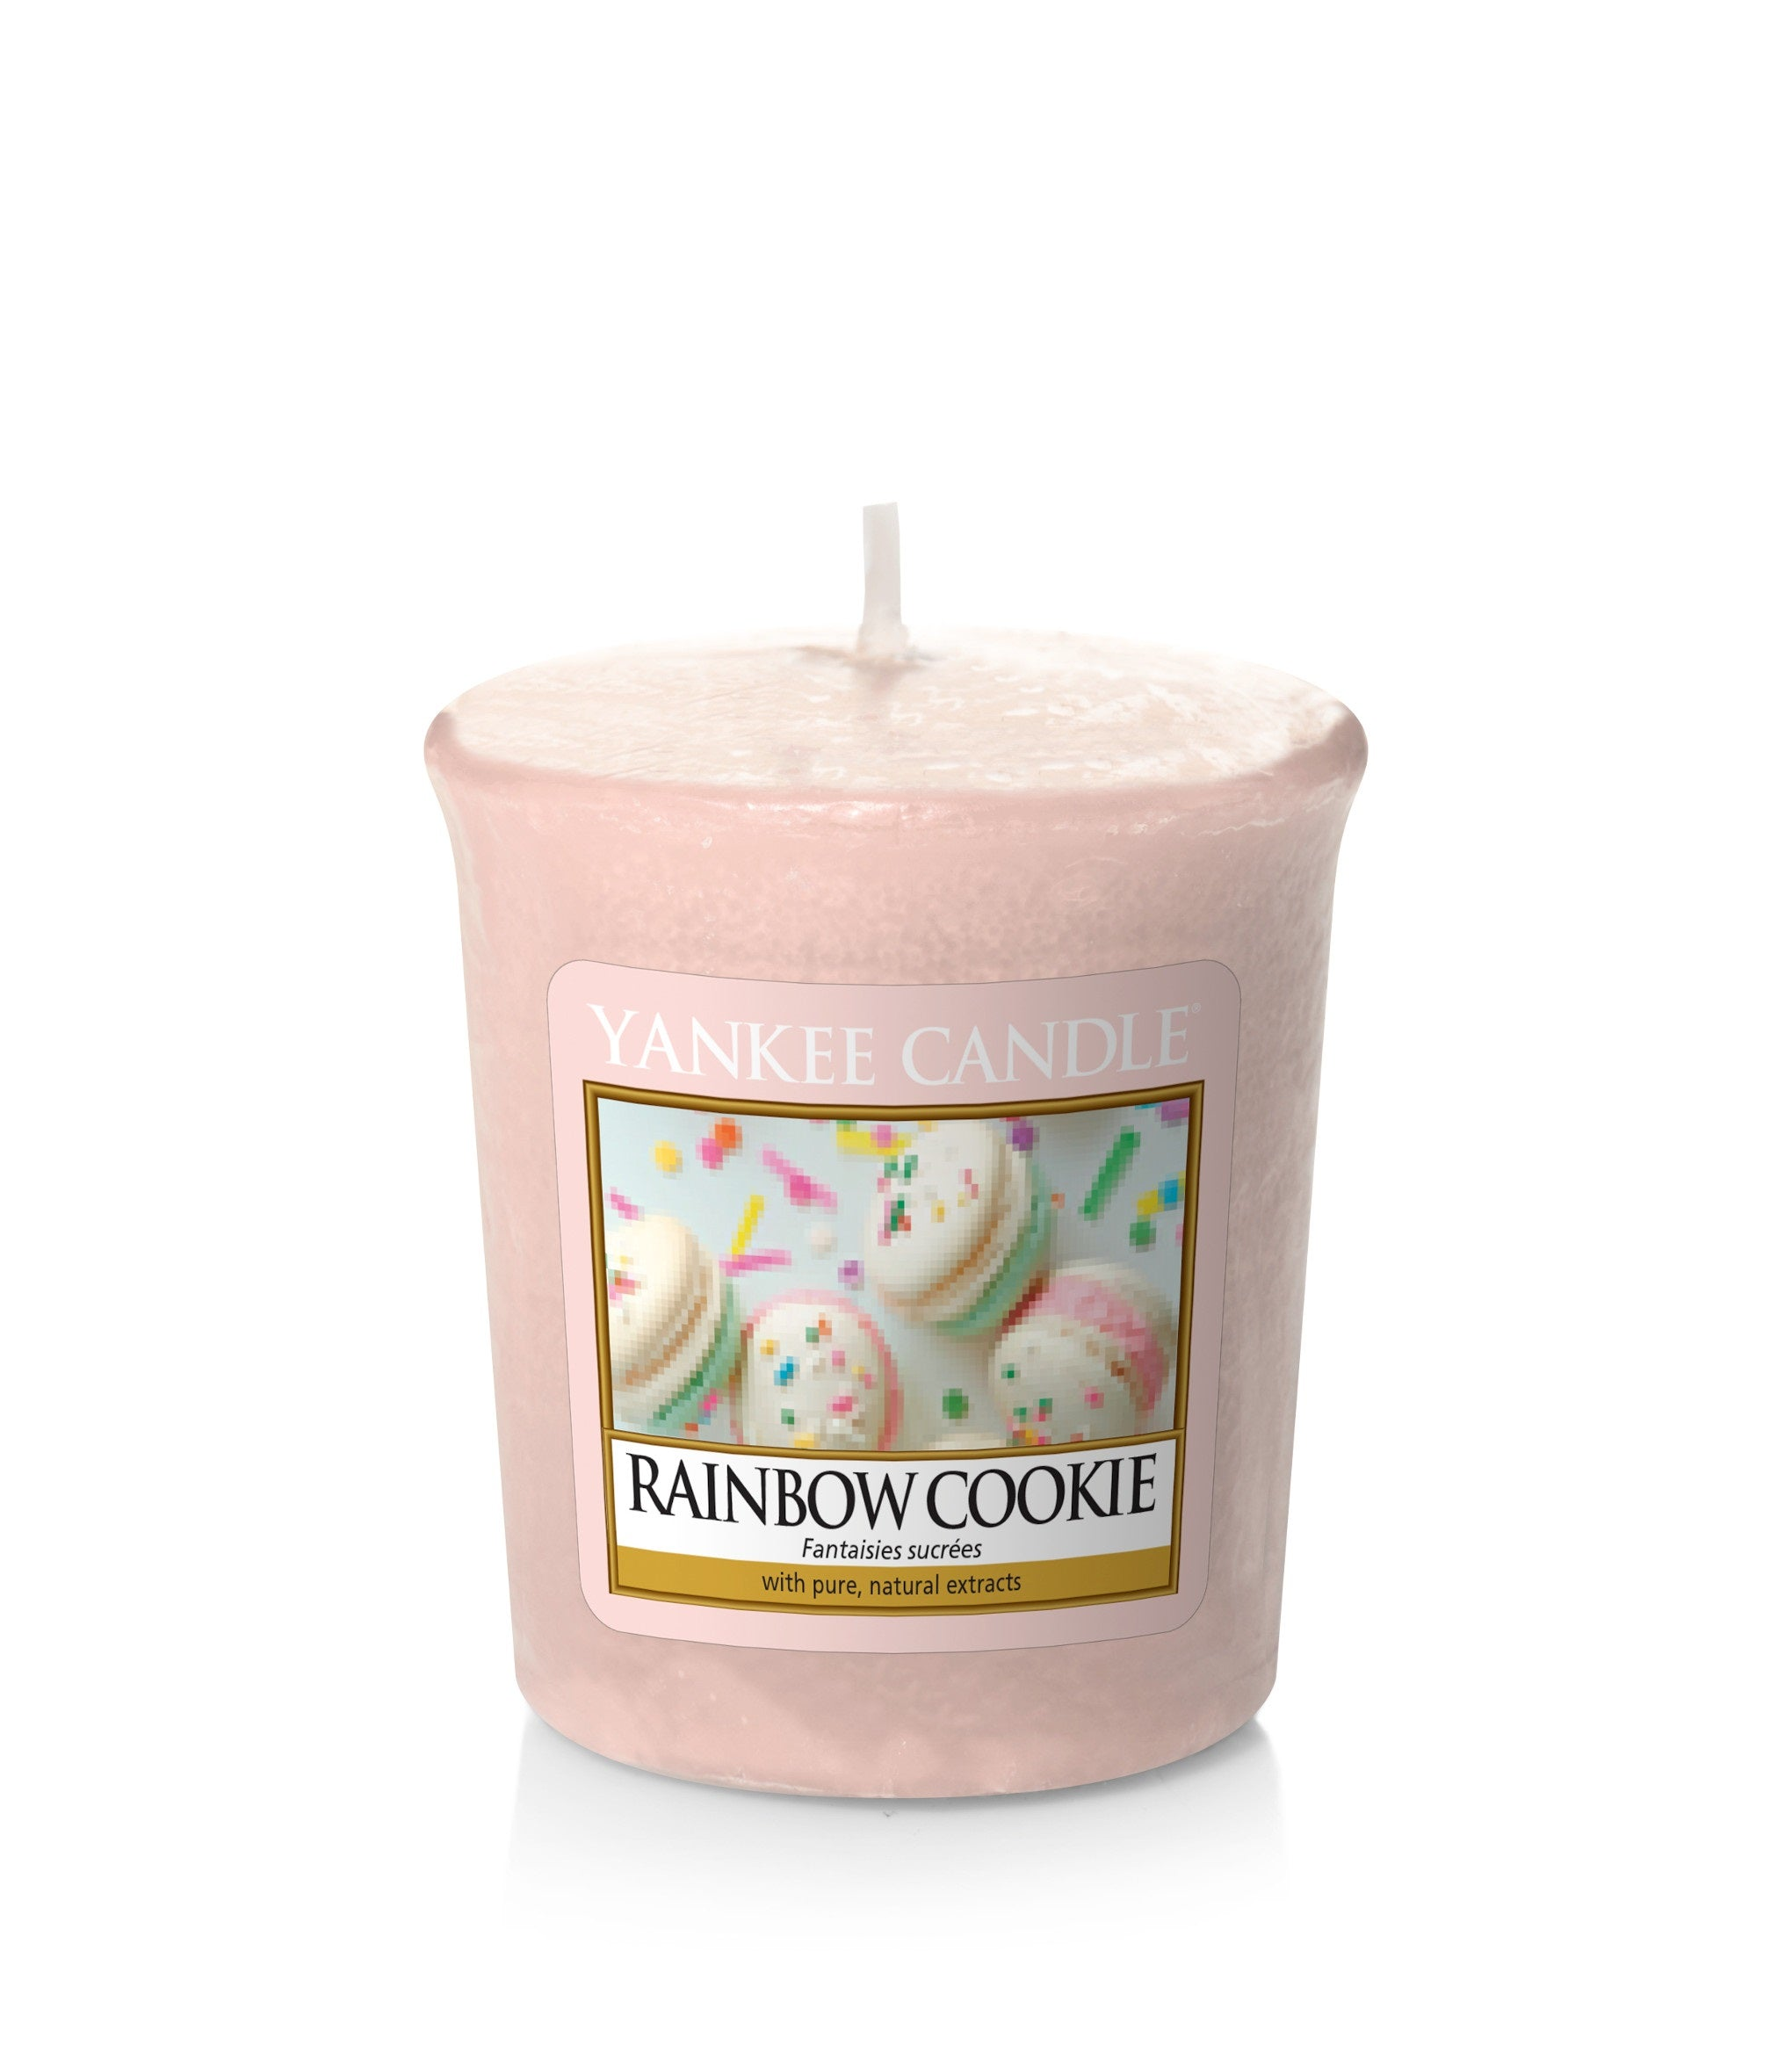 RAINBOW COOKIE -Yankee Candle- Candela Sampler